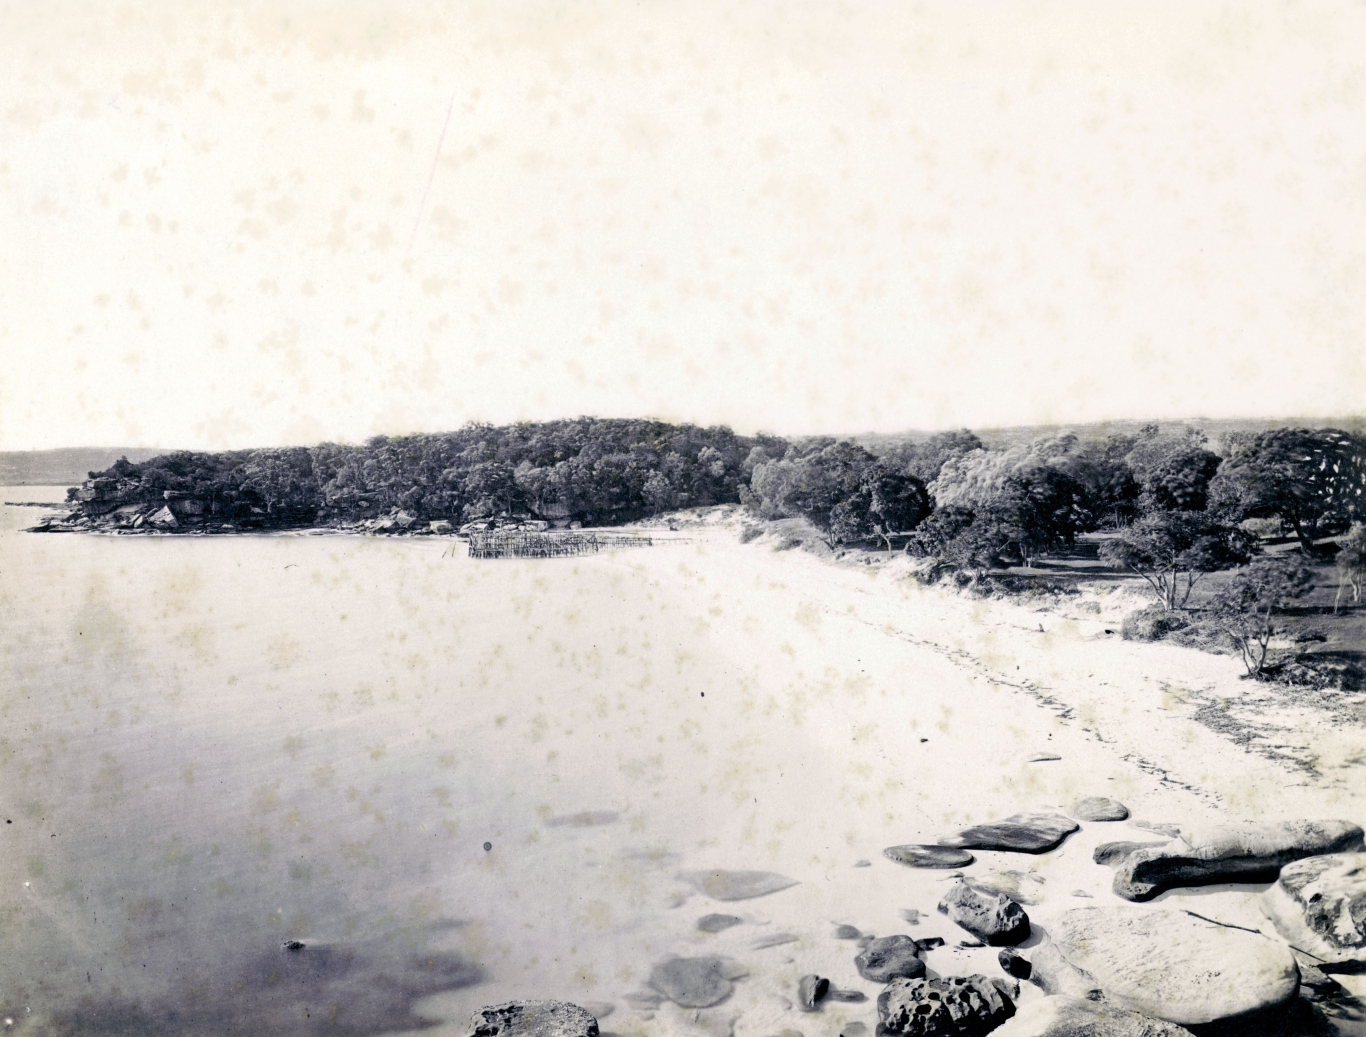 B/W photo showing a beach-lined bay with rocks and some kind of makeshift swimming enclosure at the water's edge.